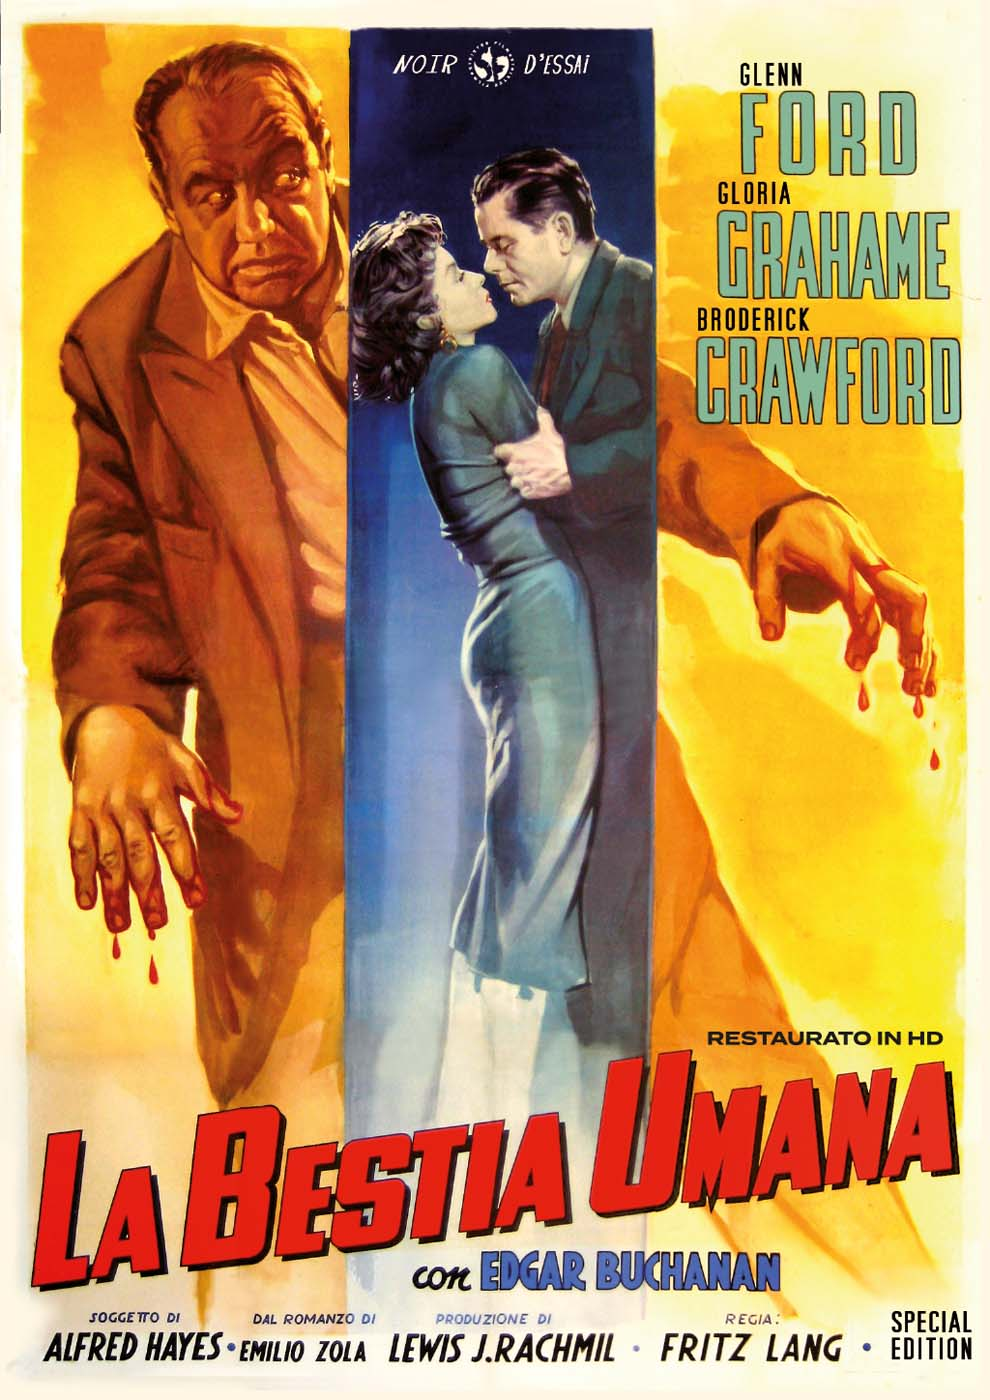 LA BESTIA UMANA - SPECIAL EDITION (RESTAURATO IN HD) (DVD)